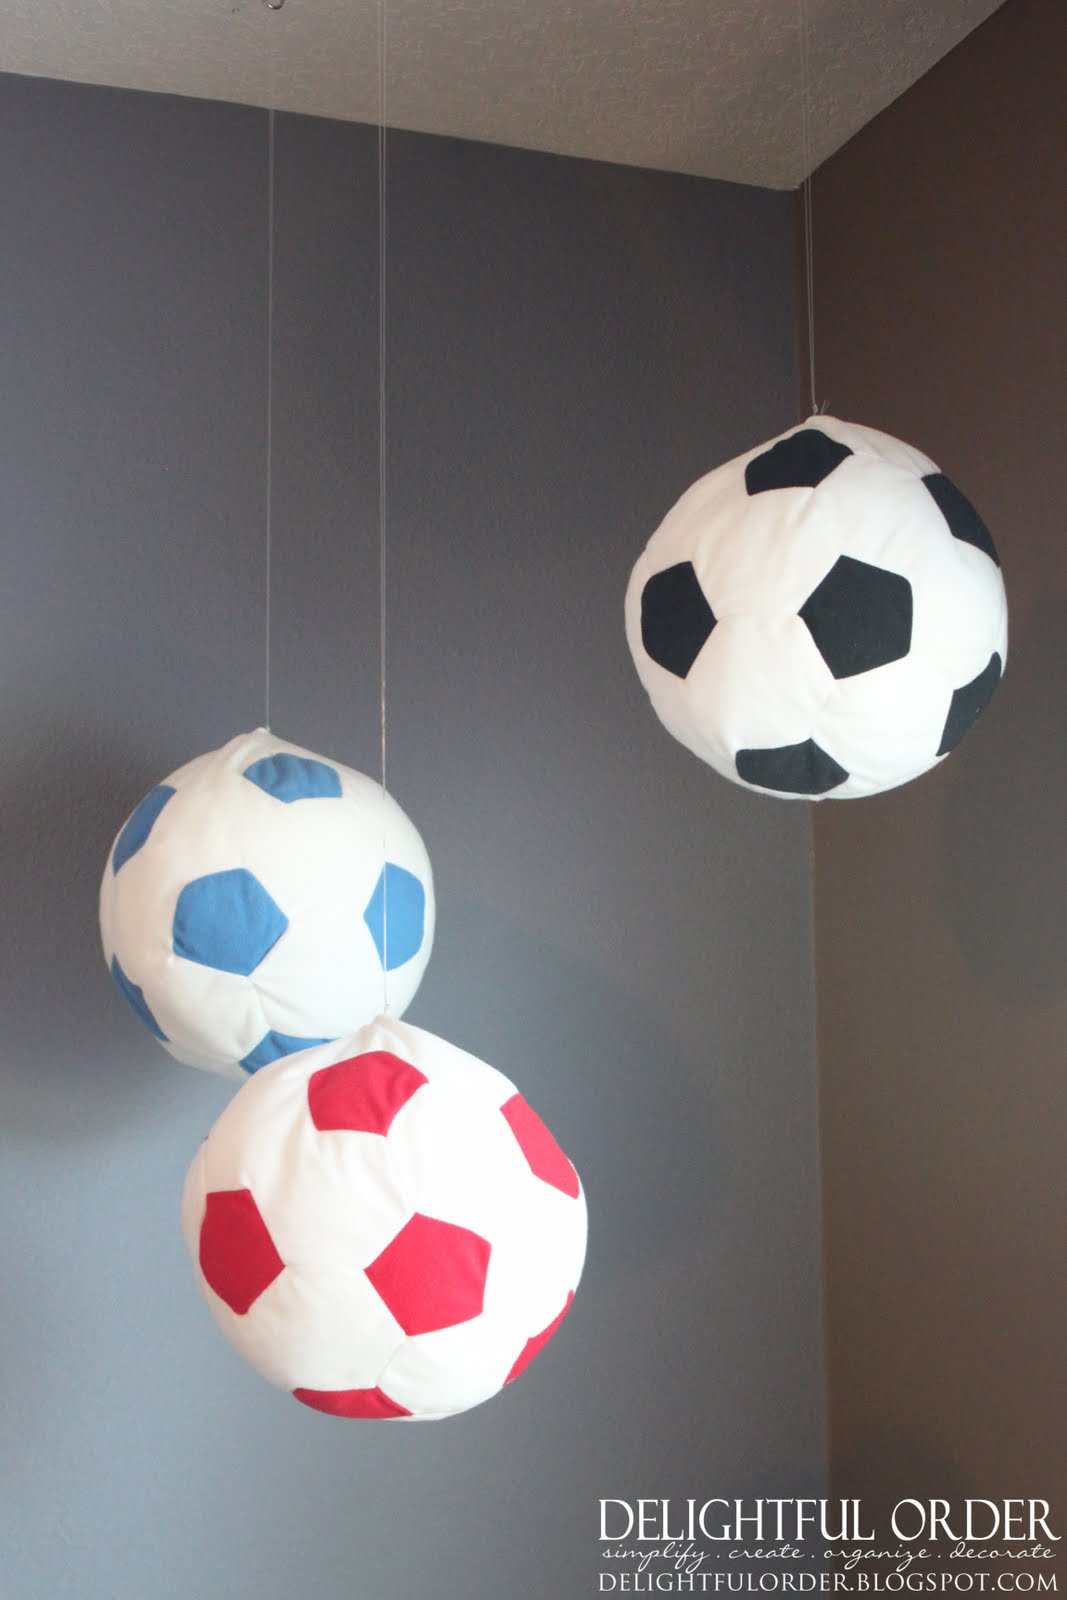 Delightful order boy 39 s sports room decor clients home for Ball decoration ideas